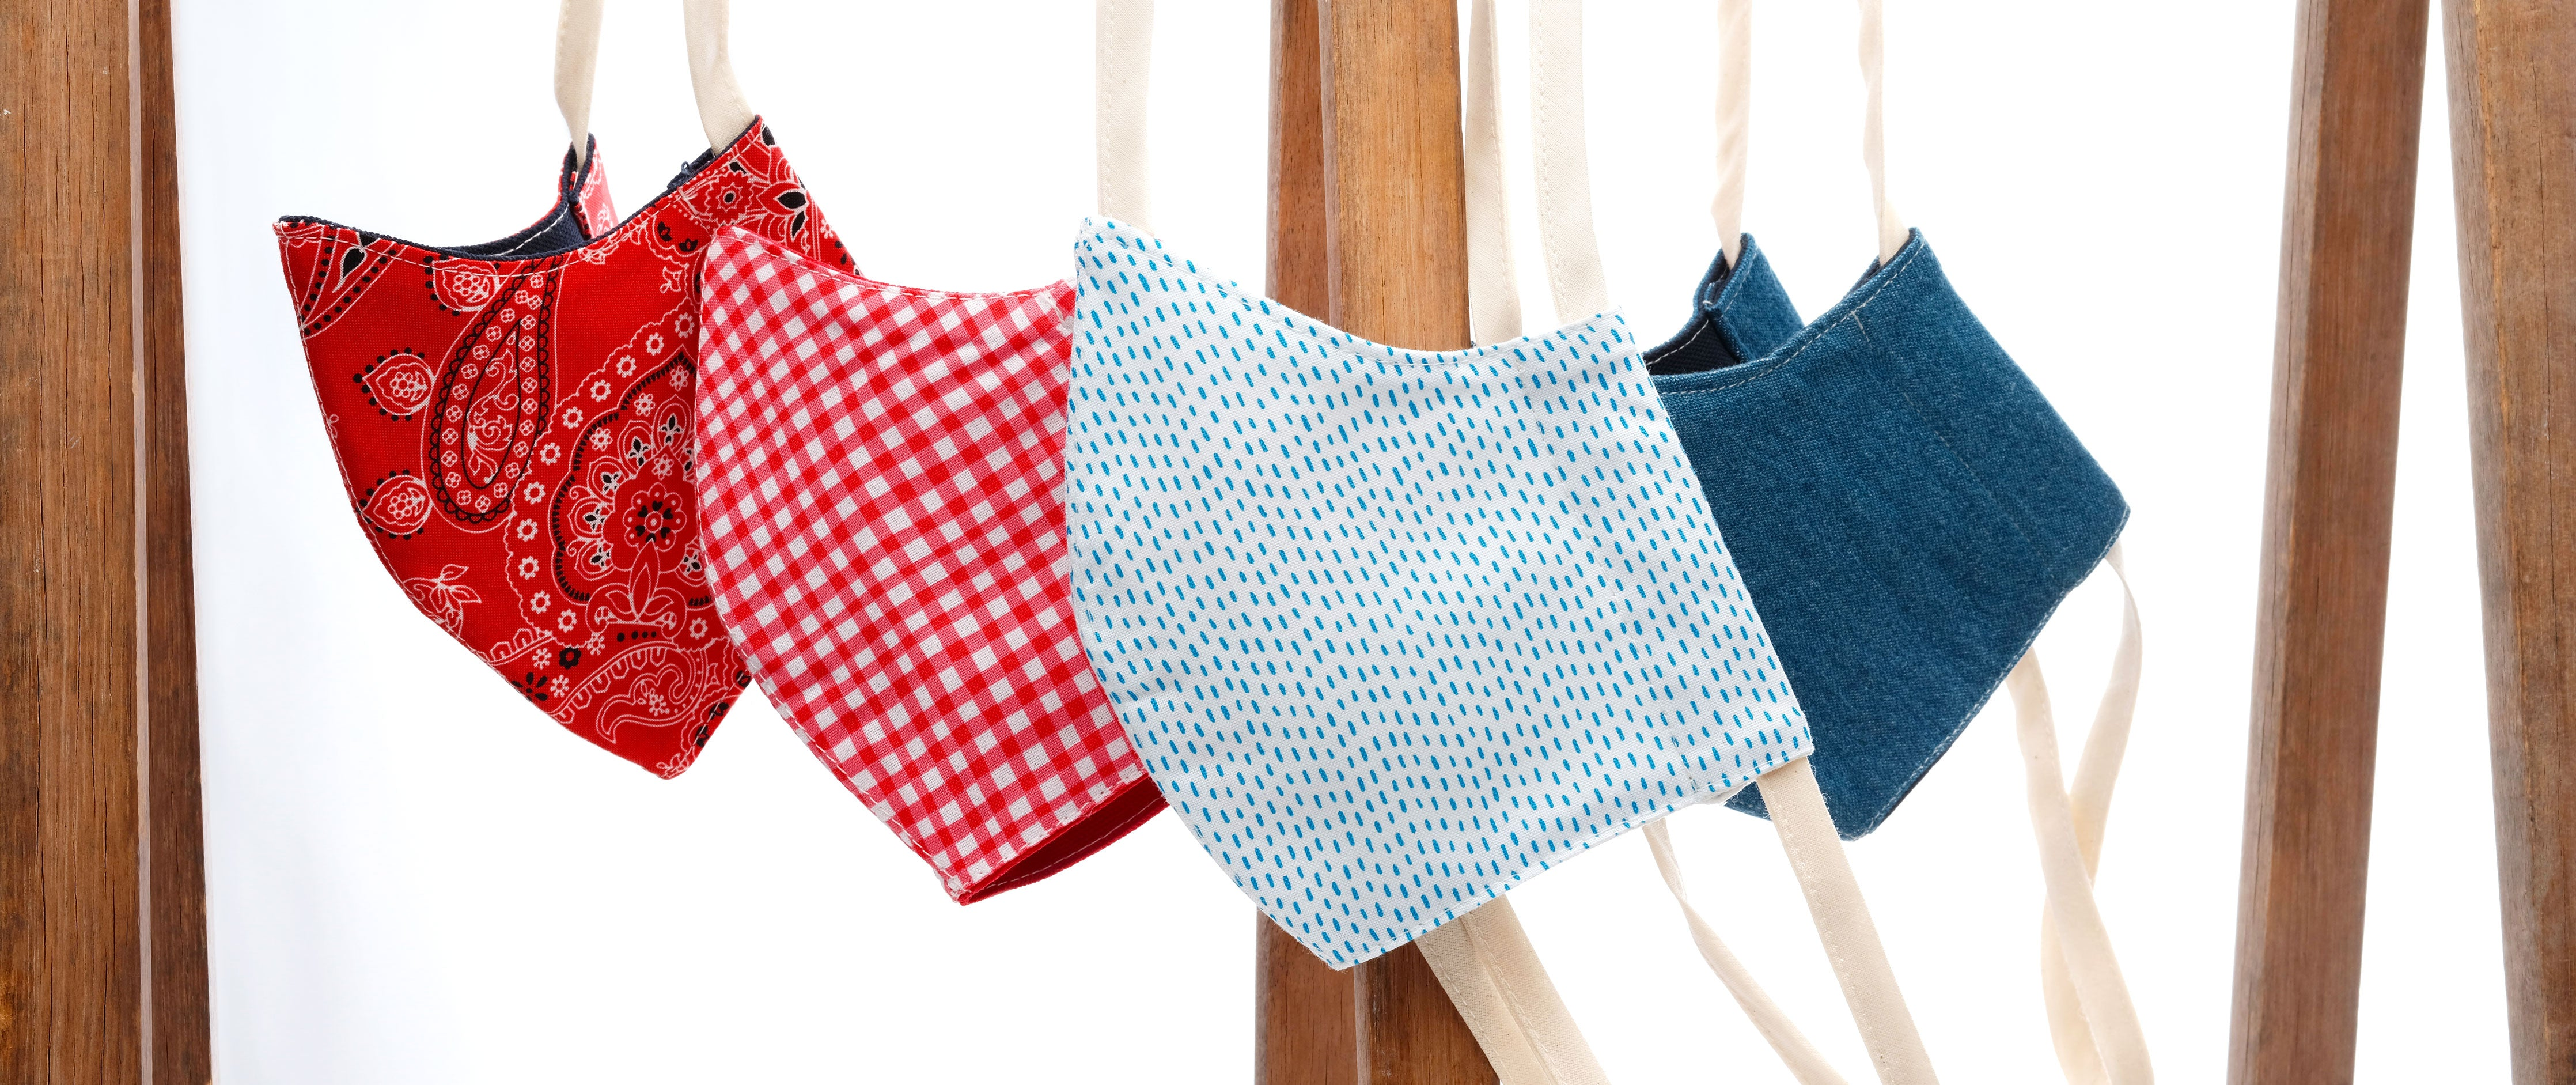 4 hanging faces masks. From left to right, red bandana, strawberry gingham, white blue dash, and denim.